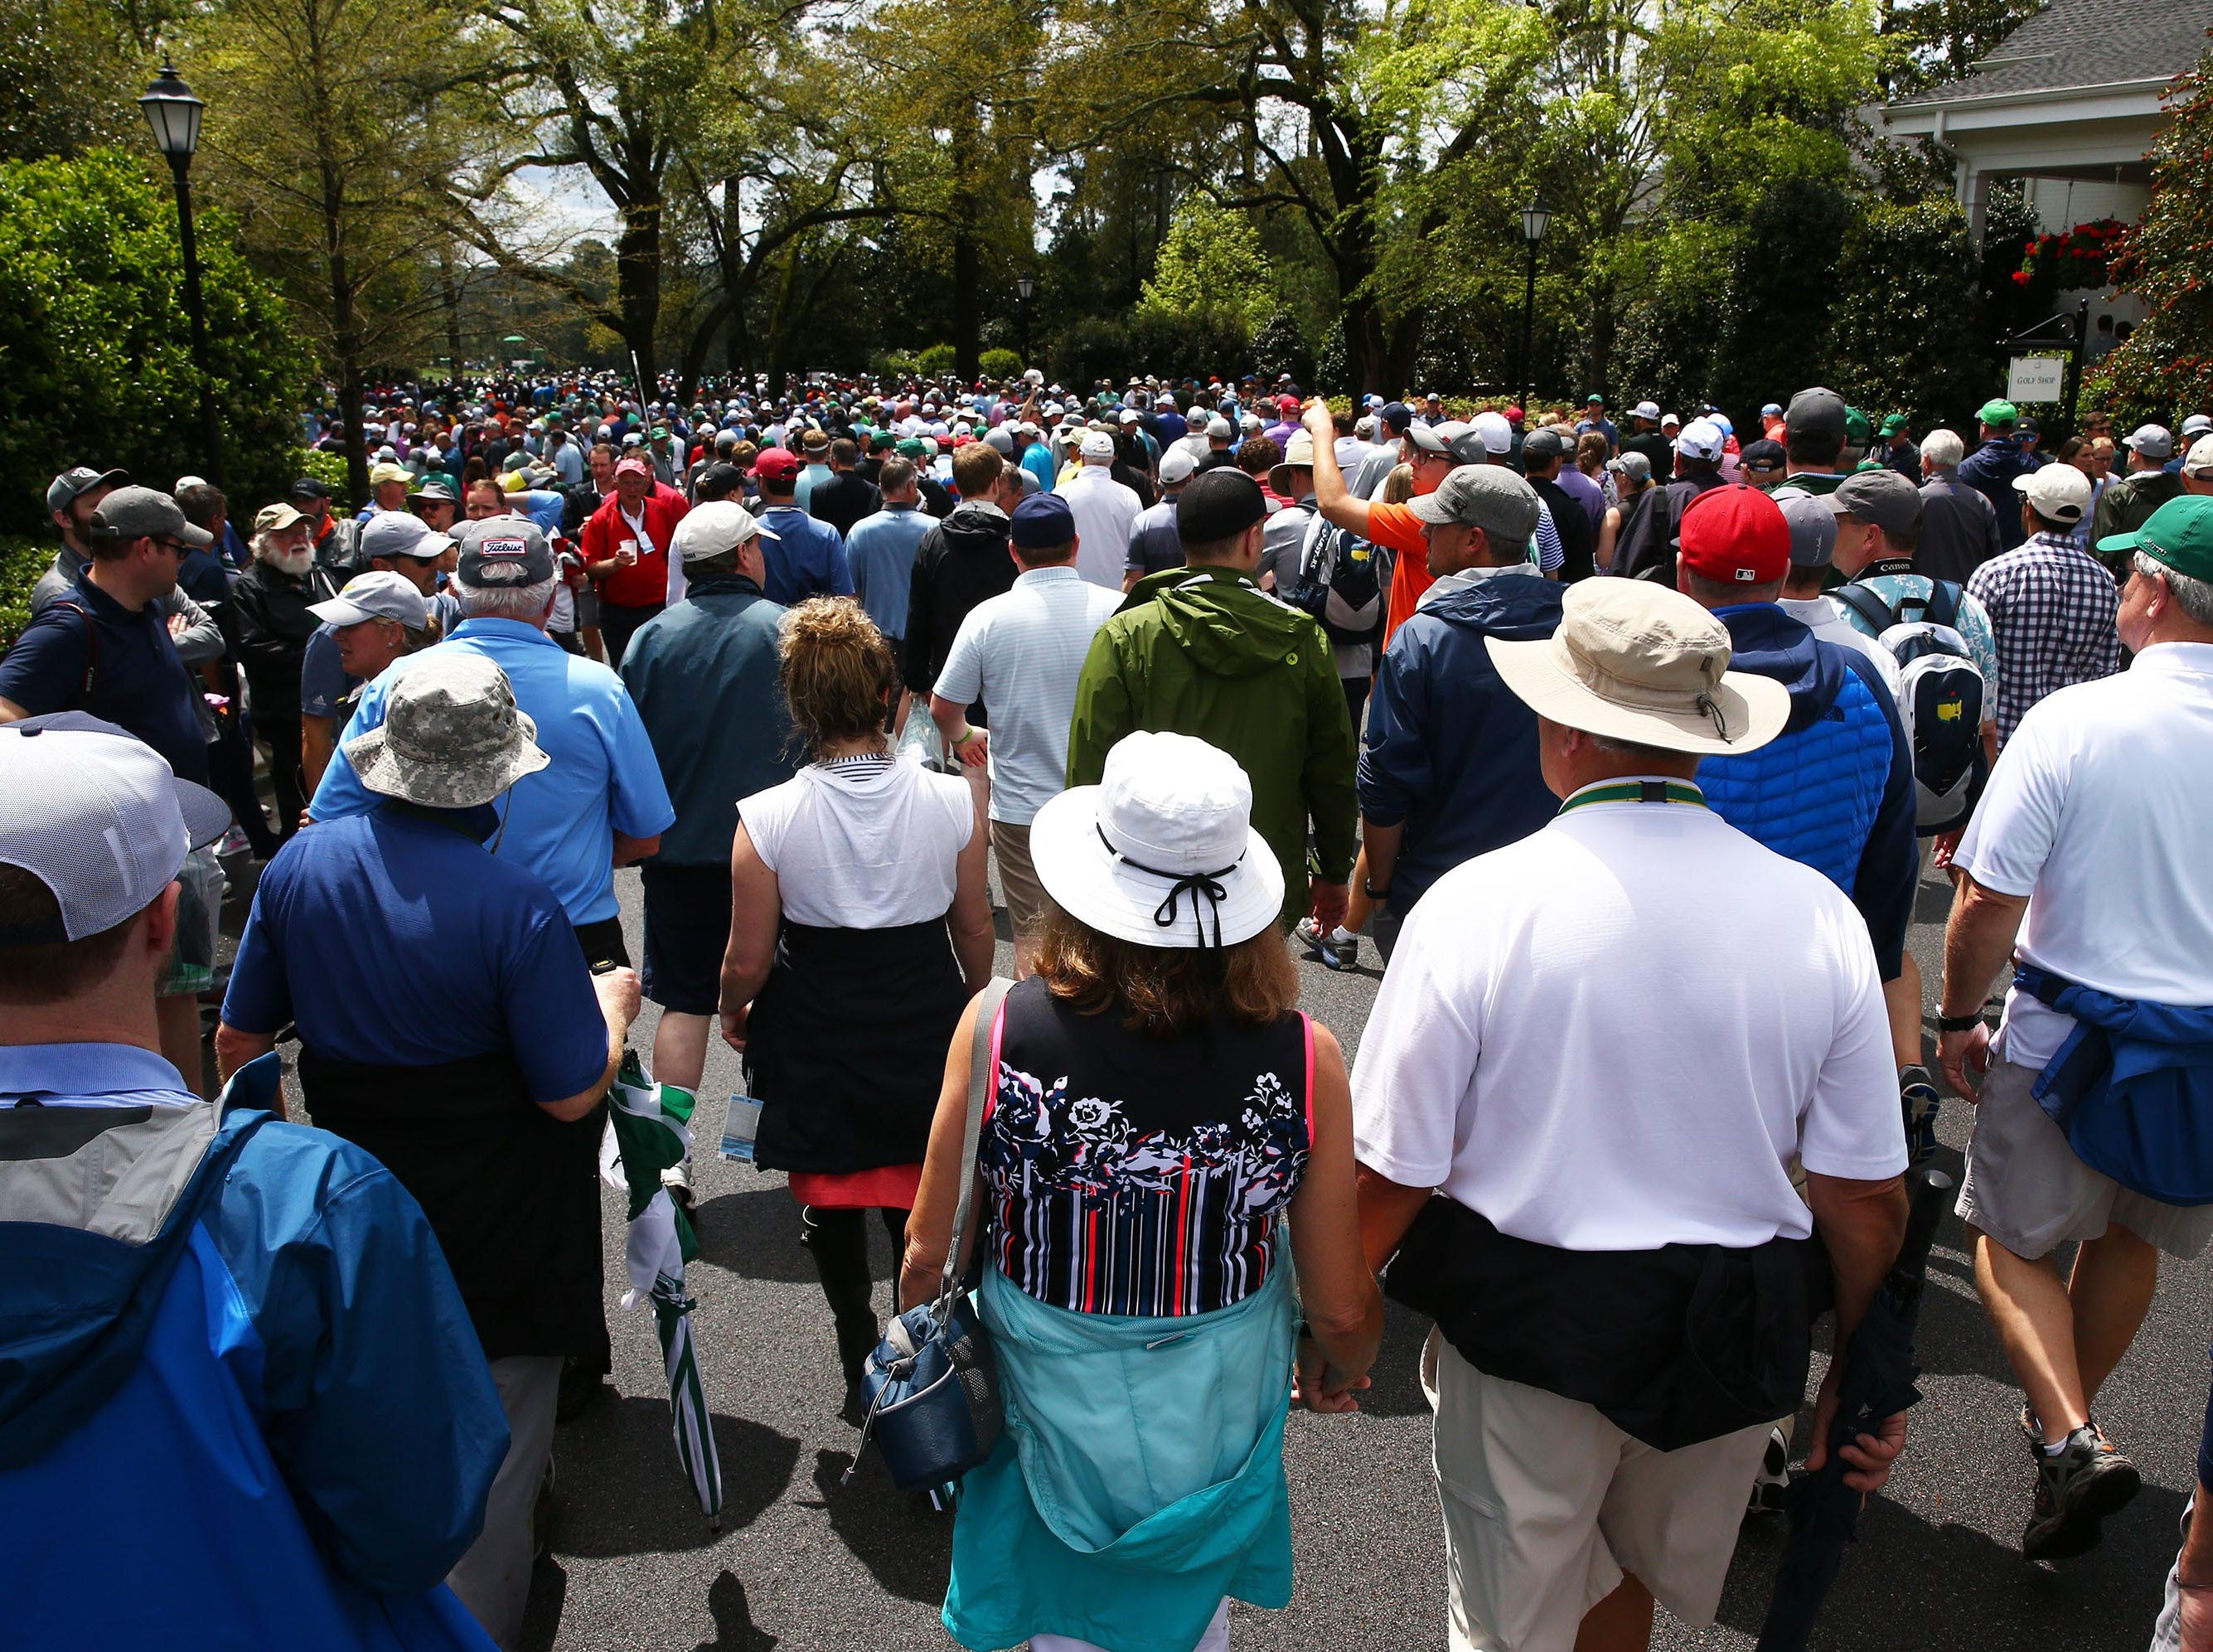 Apr 9, 2019; Augusta, GA, USA; Patrons return to the course after a weather delay during a practice round for The Masters golf tournament at Augusta National Golf Club. Mandatory Credit: Rob Schumacher-USA TODAY Sports